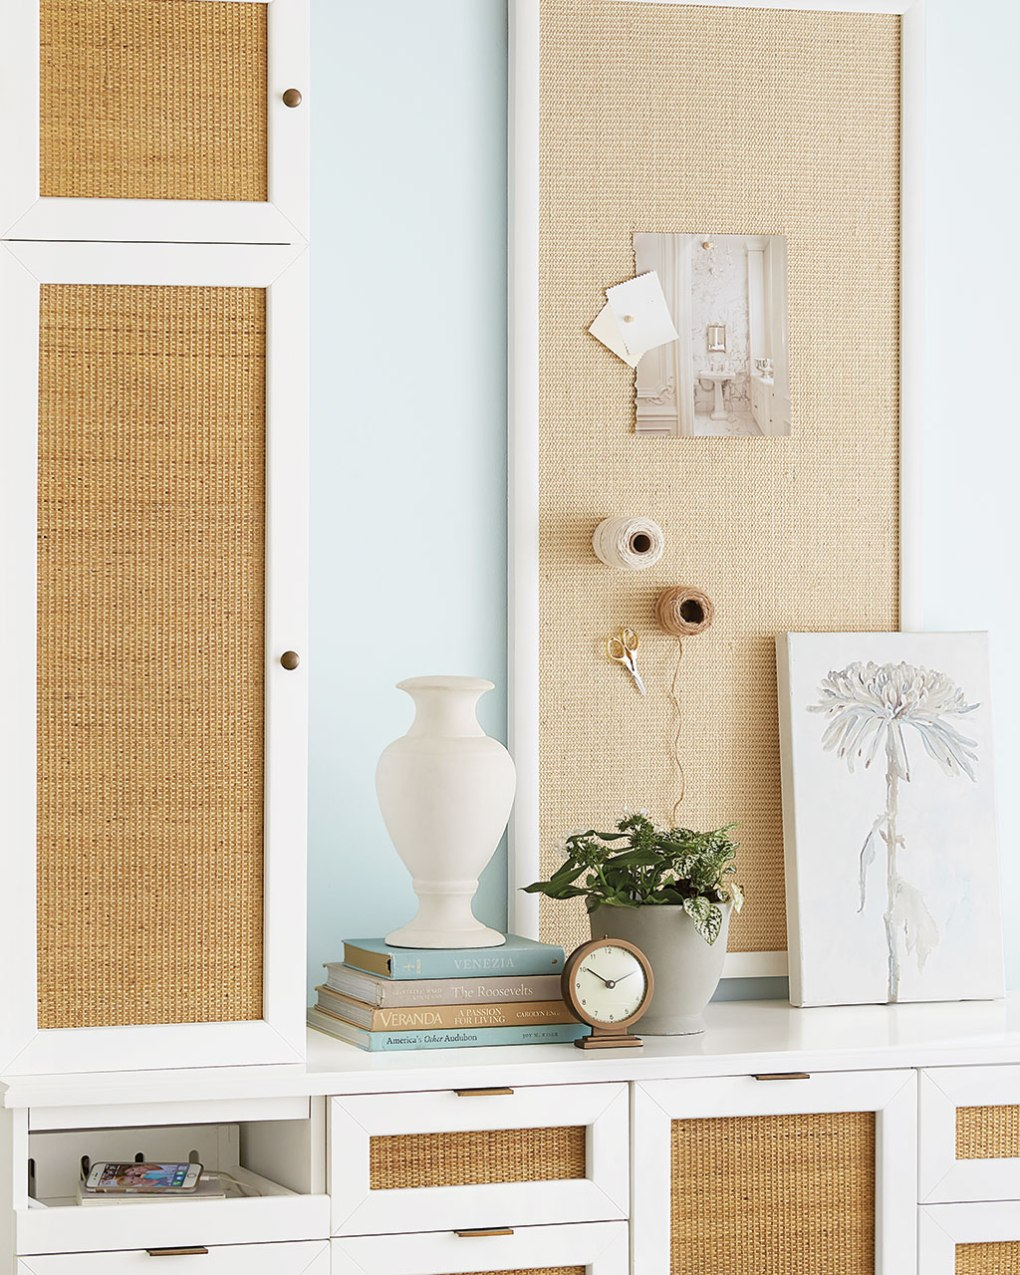 Rattan panels on cabinets and hutch from Ballard Designs